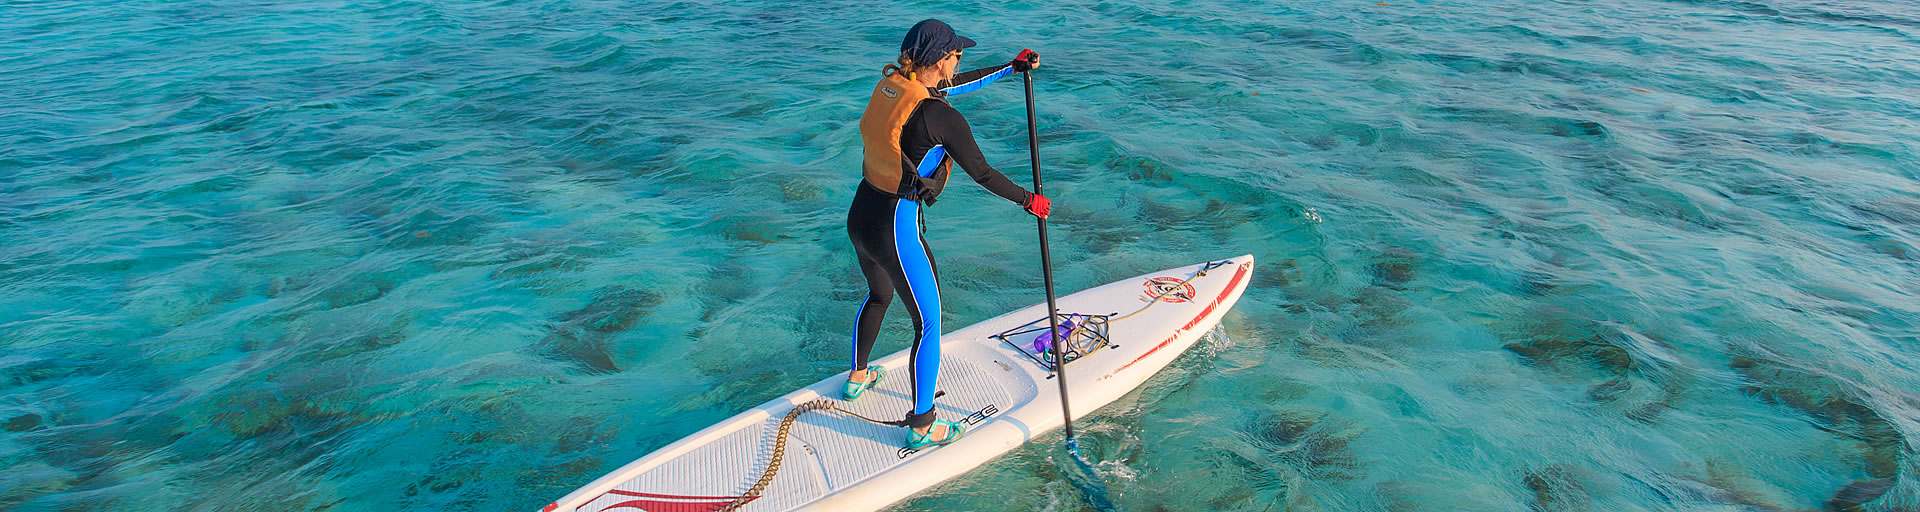 Stand Up Paddleboard (SUP) in Belize